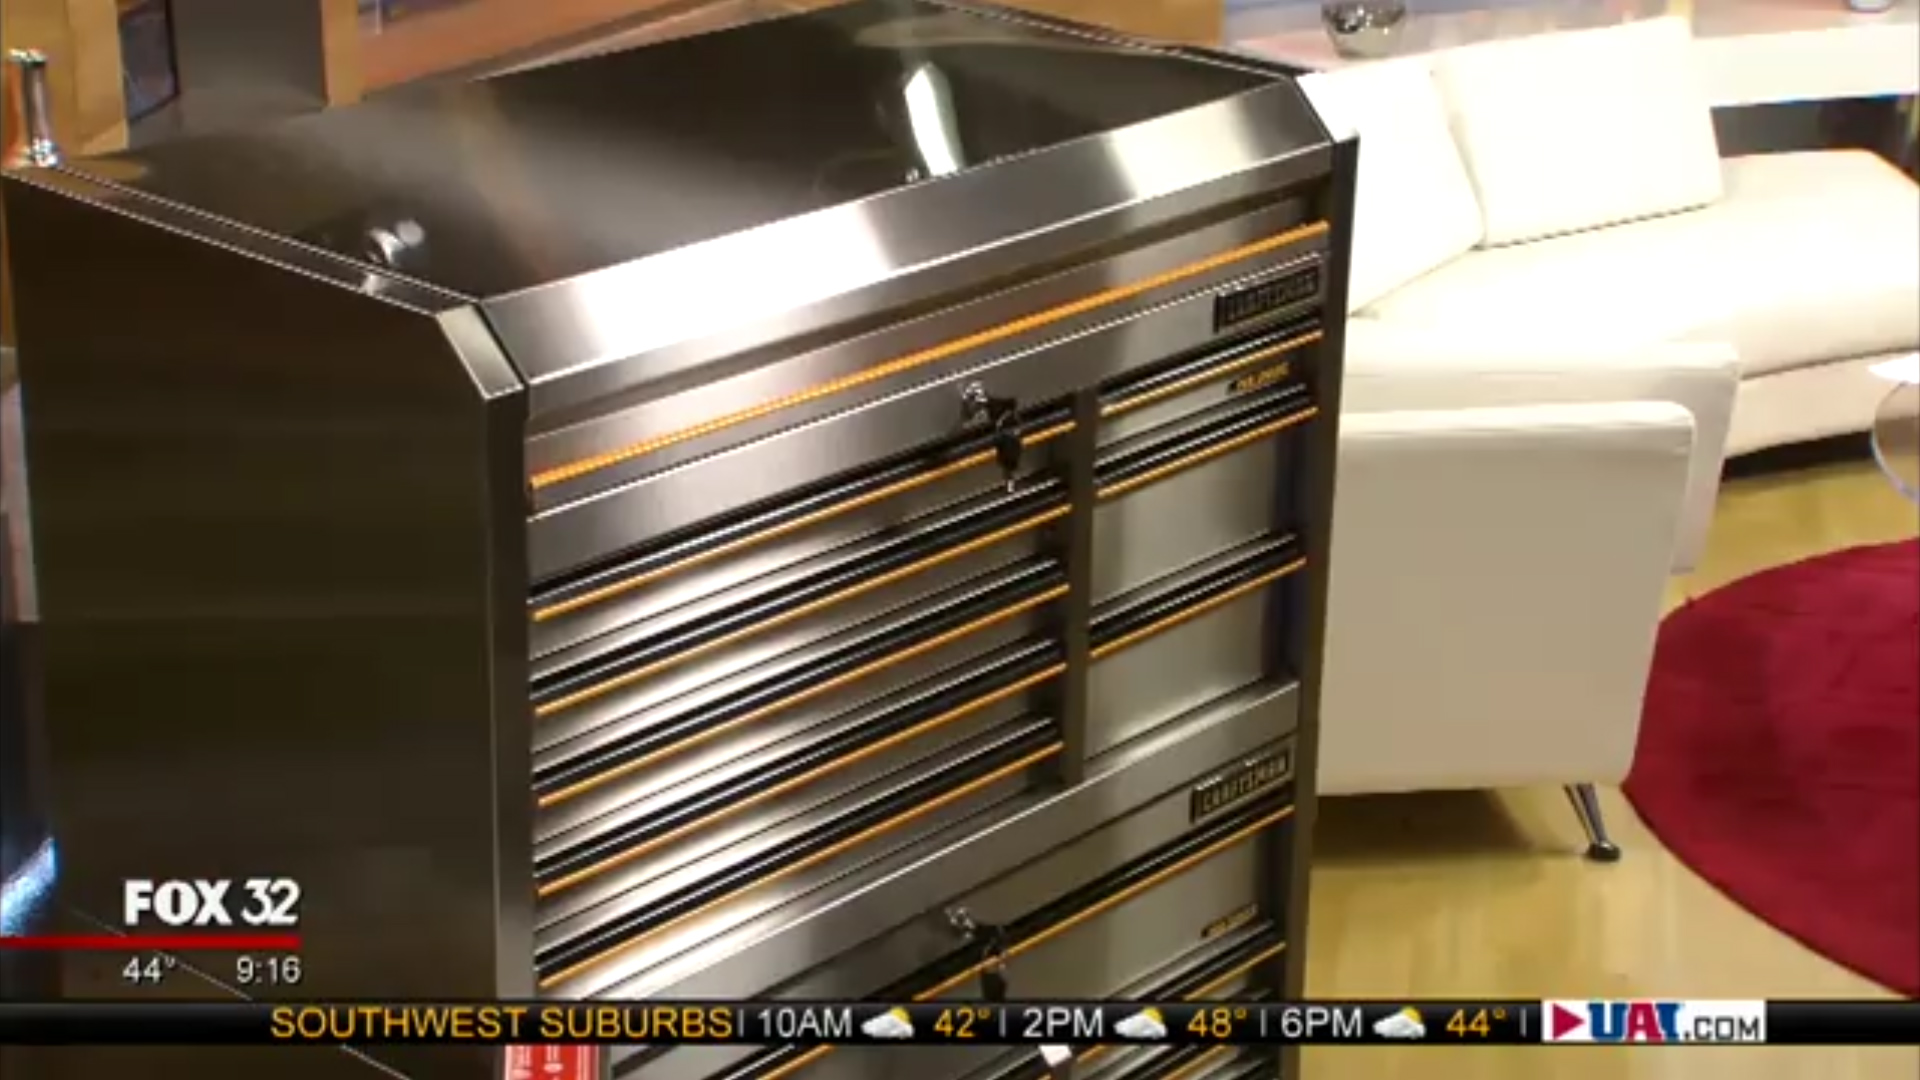 Craftsman/Sears Pro Series Tool Storage - www.Sears.com Rolling cabinet: 1199.00Top chest:$999.99